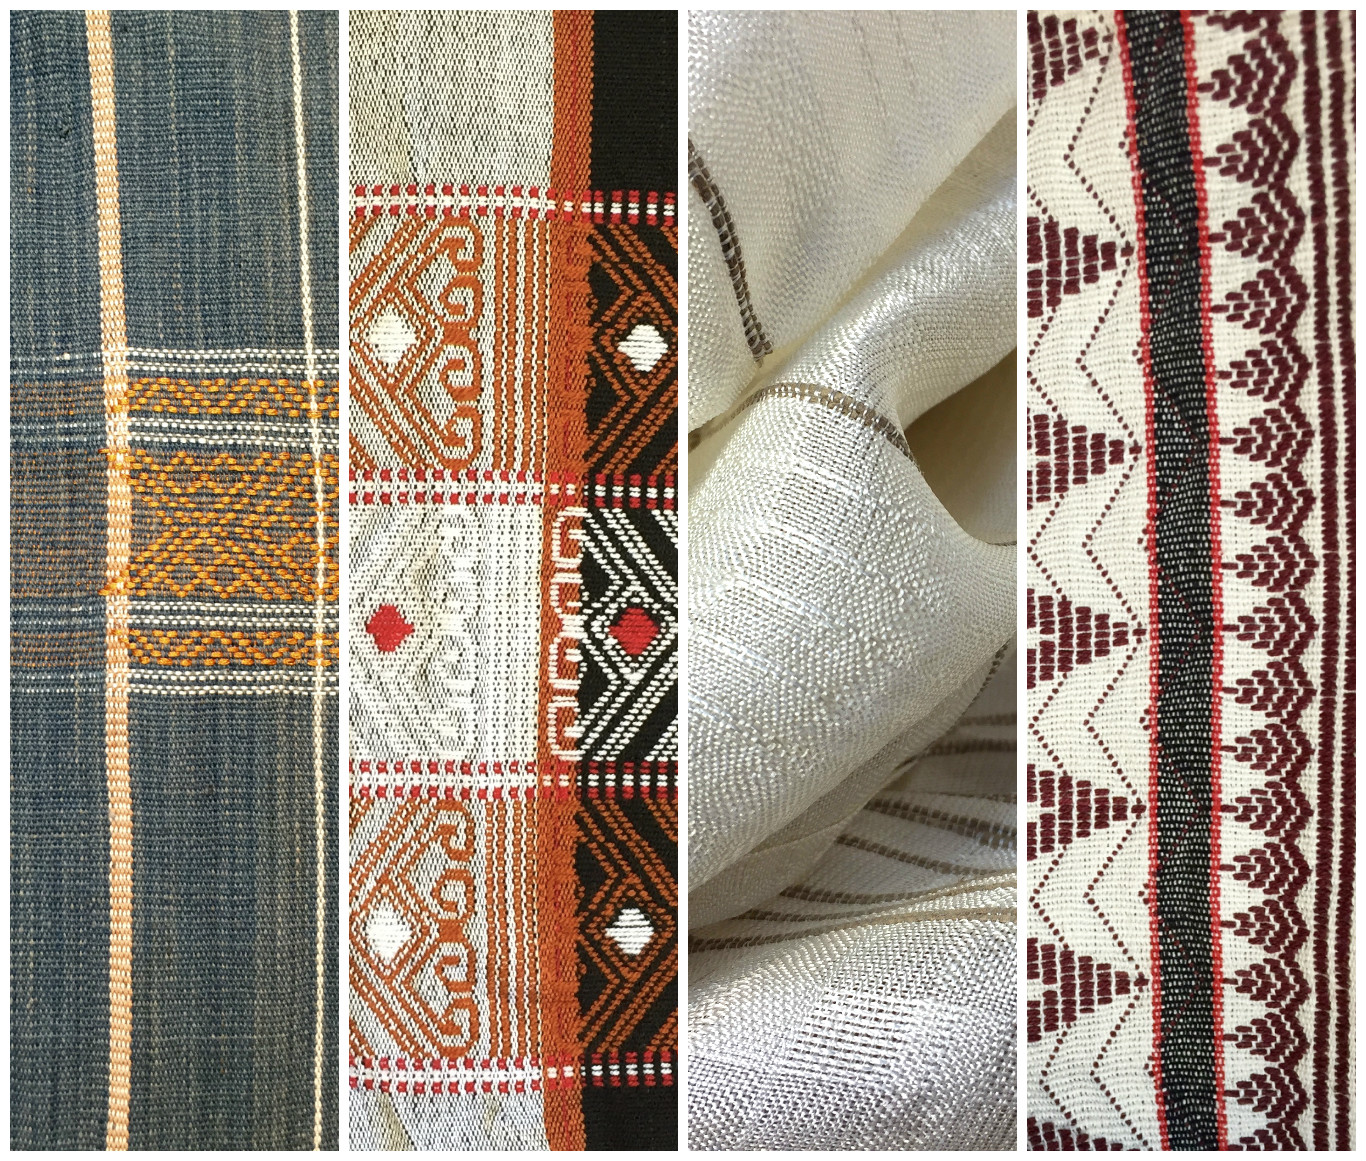 Far Left and Right: cotton scarf and throw with Naga designs by Chin ethnic weavers from Myanmar; Second left: cotton shaman shawl from the Apatani tribe, Ziro Valley in Arunachal Pradesh, India; Second right: silk and lotus thread scarf from Paw Khone Village, Myanmar.